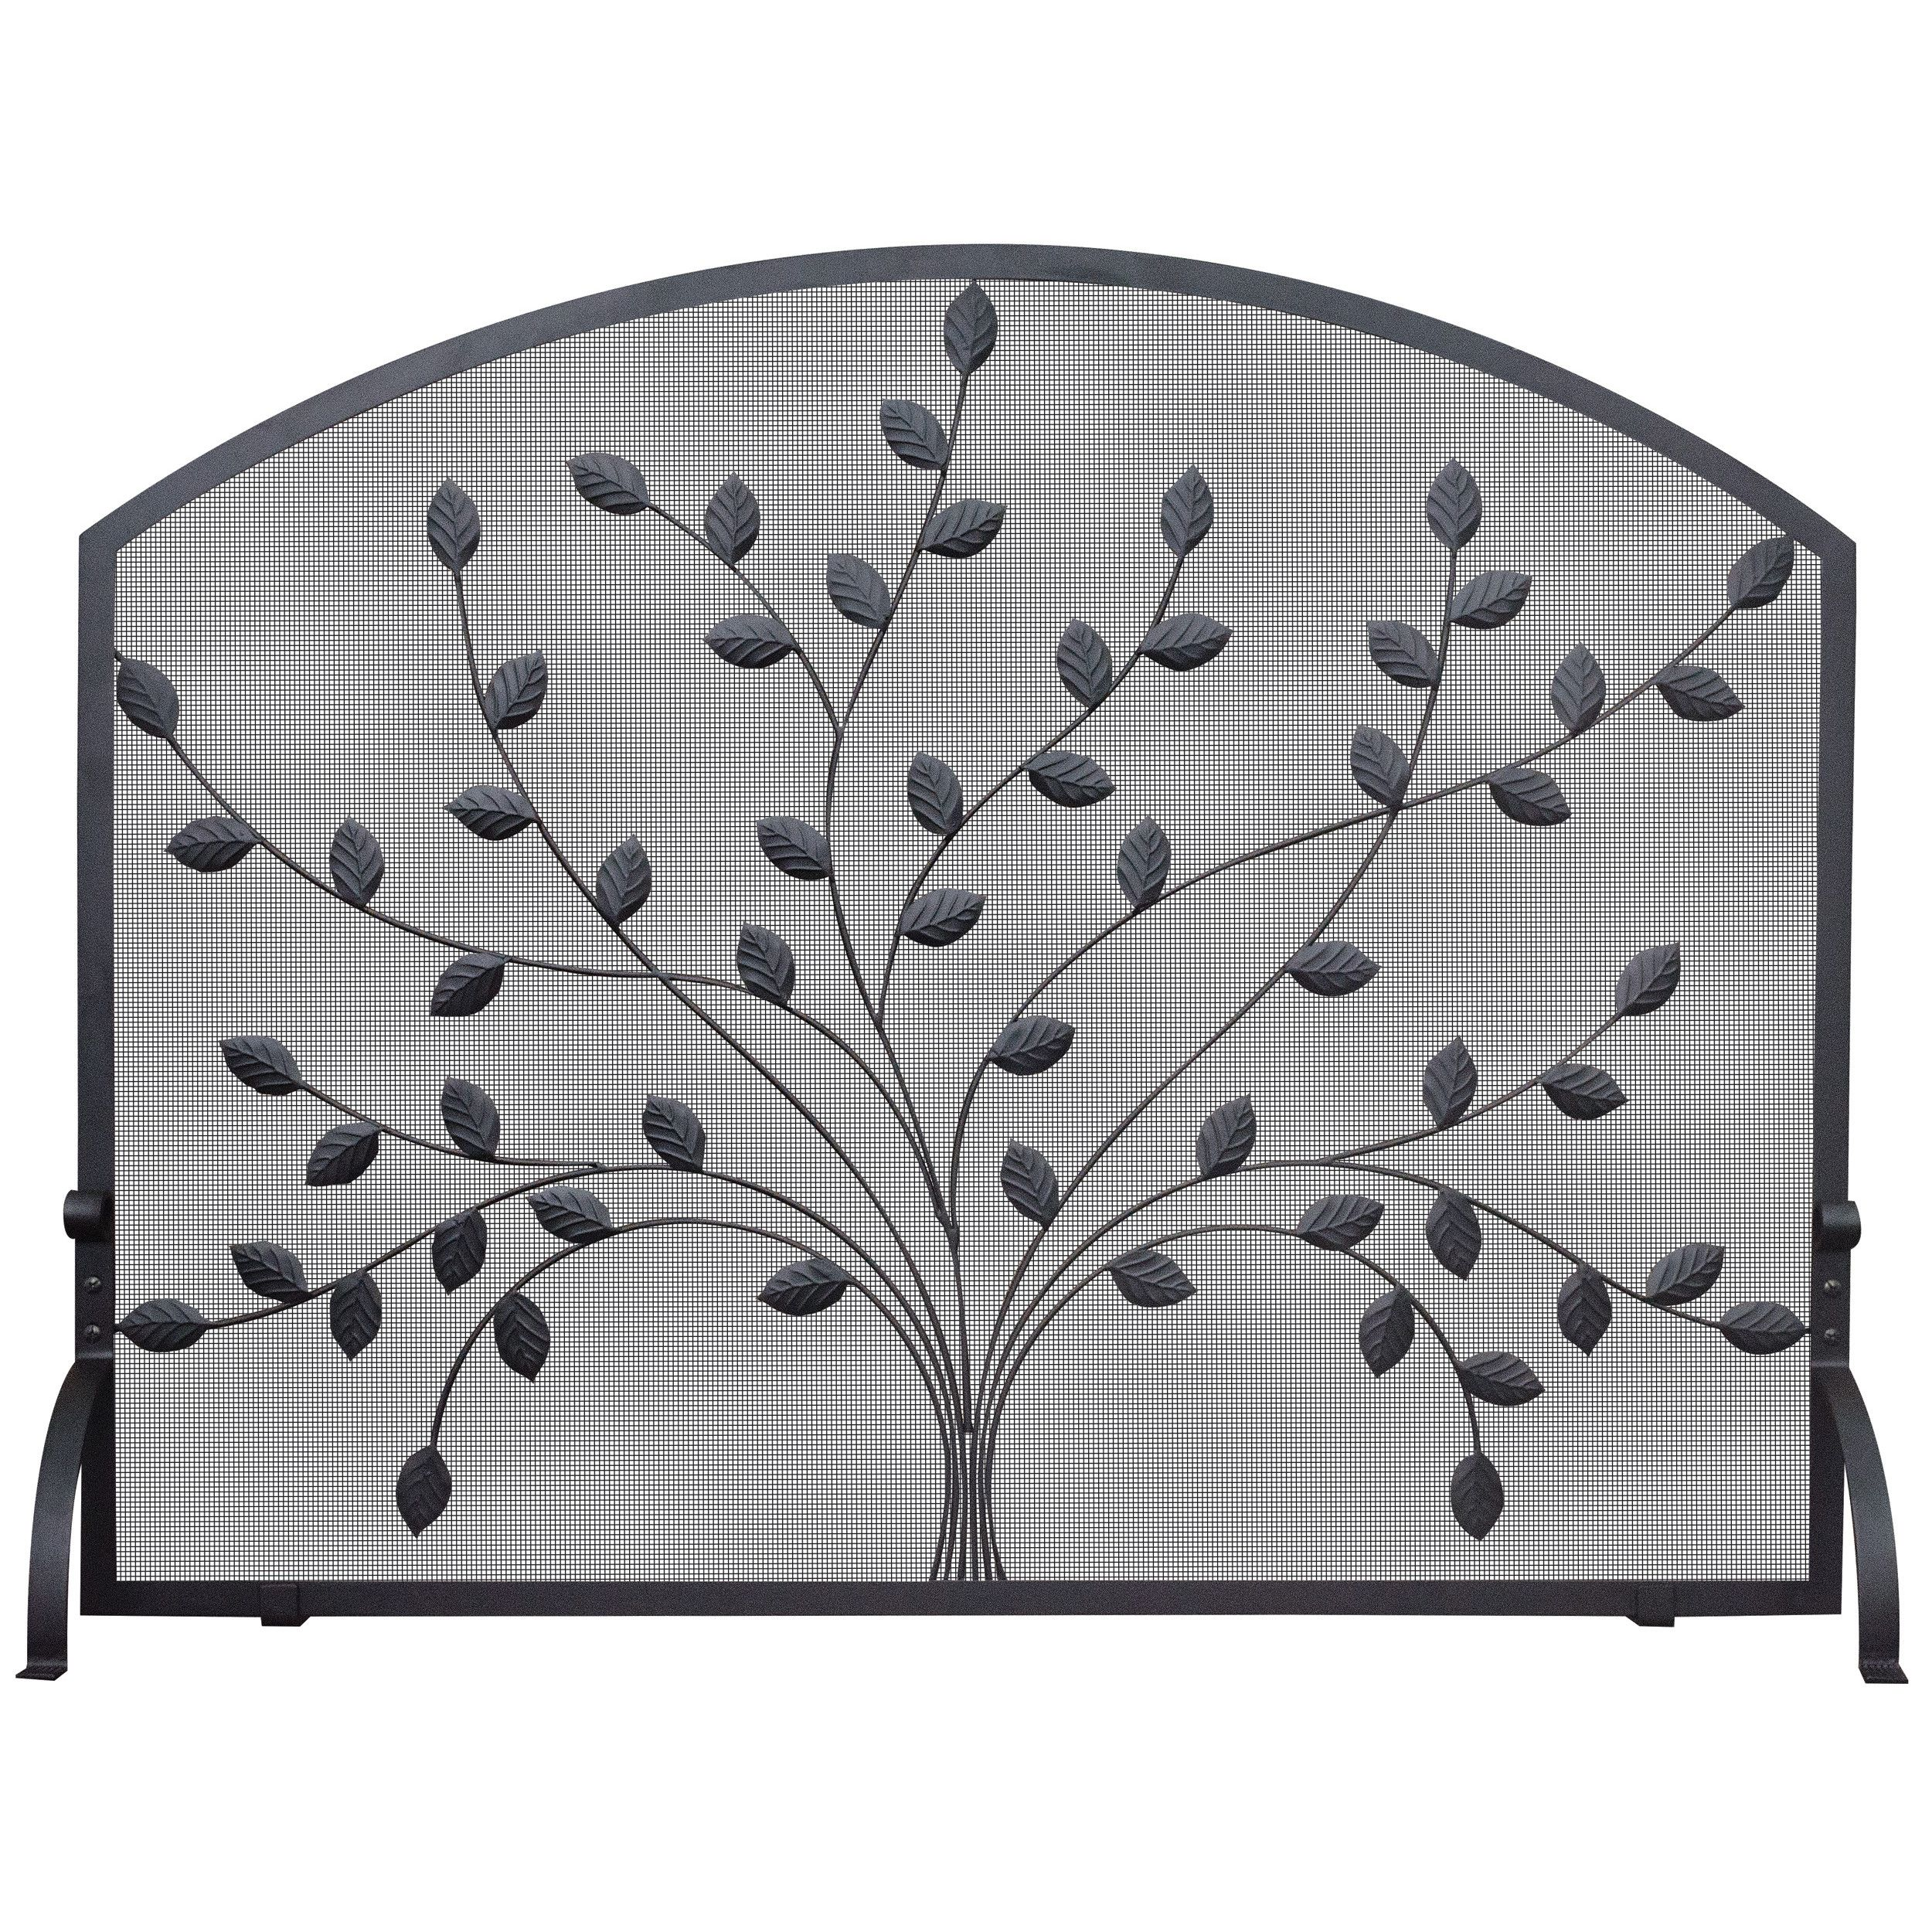 ironbronze vintage used fenders screens fireplace antique screen cast and curved collection chairish